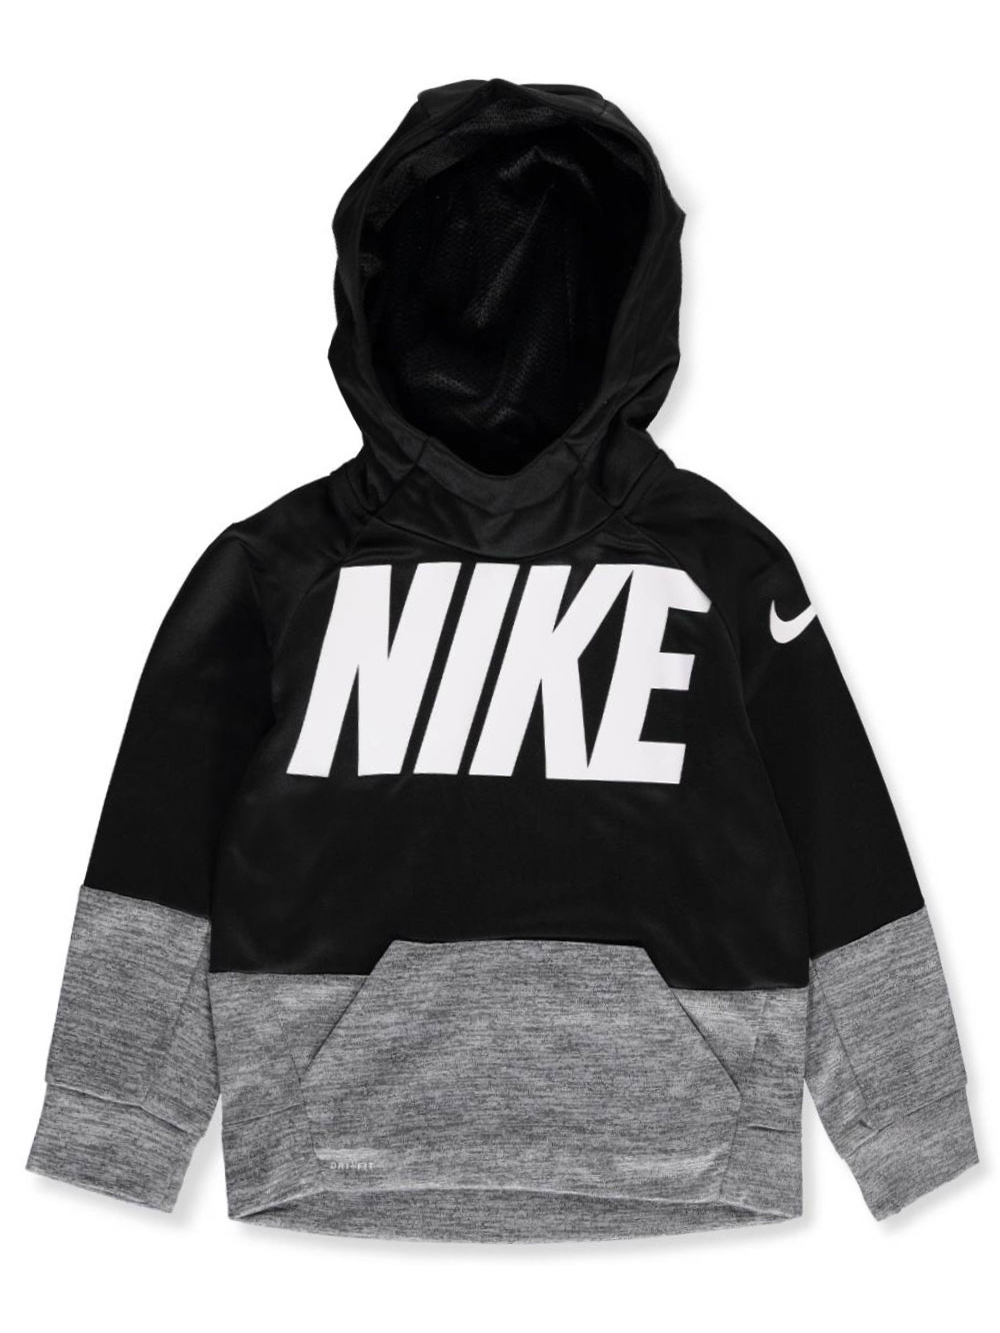 Size 5 Hoodies for Boys